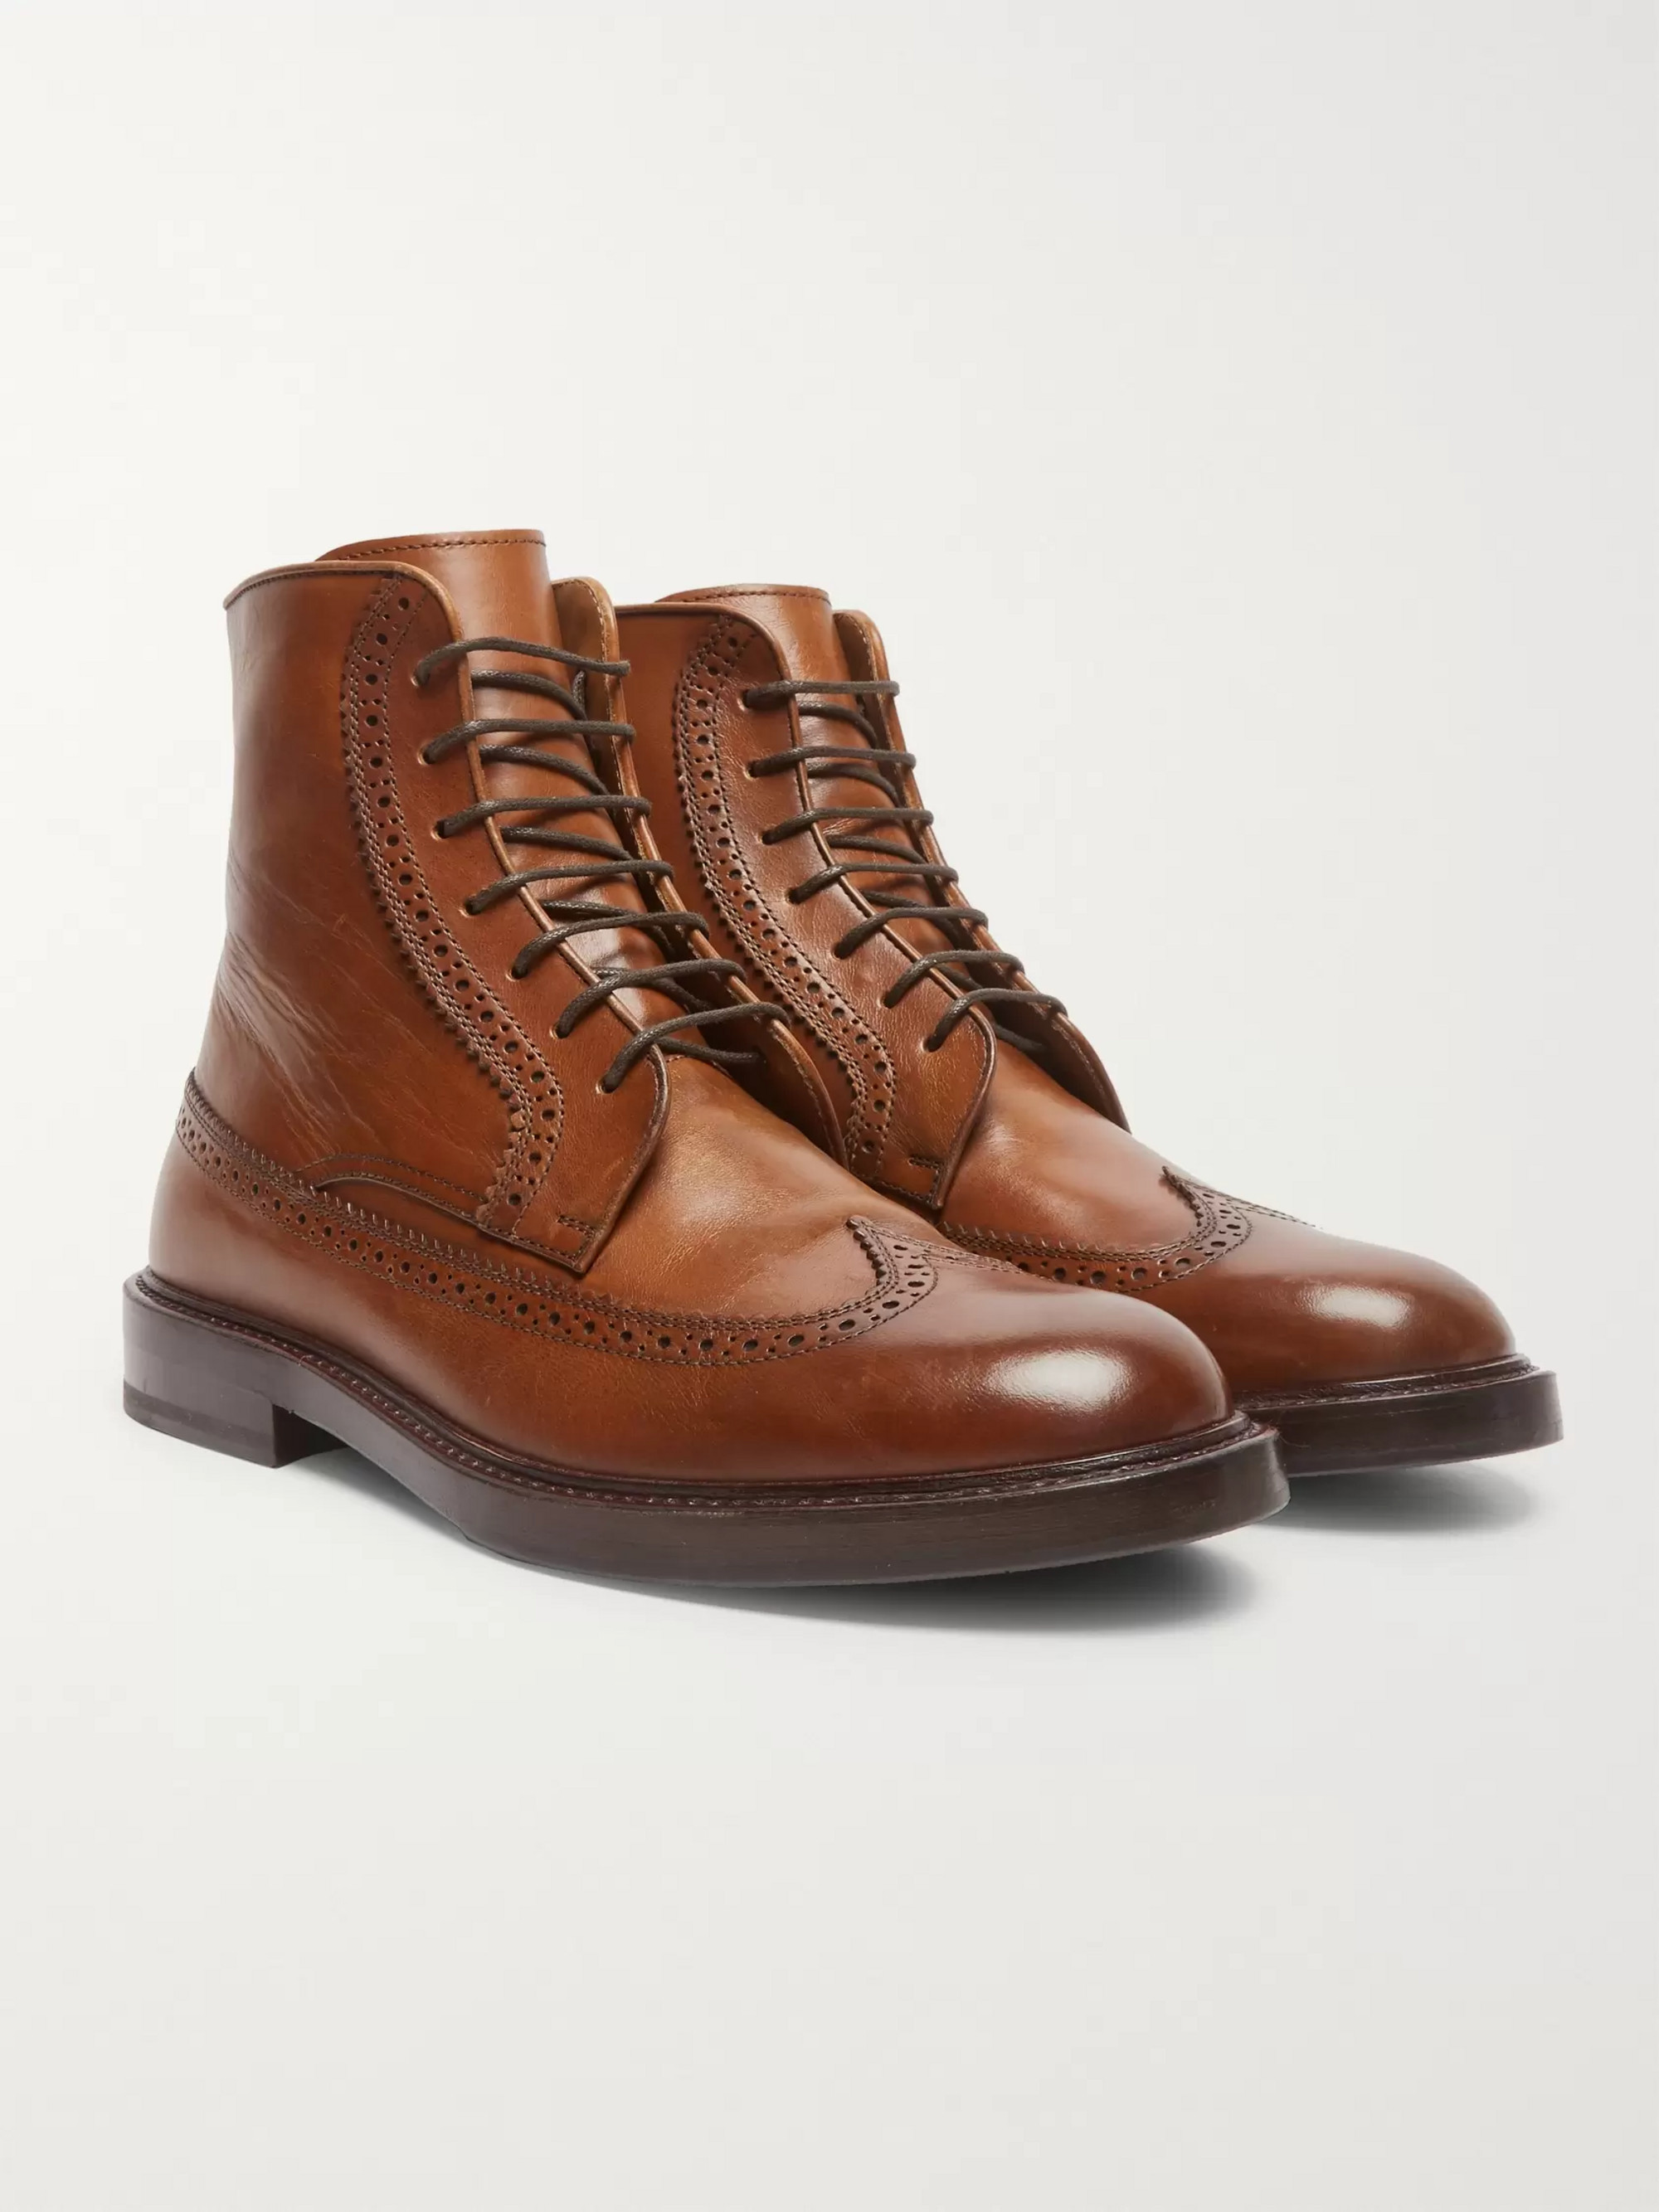 Brunello Cucinelli Leather Brogue Boots